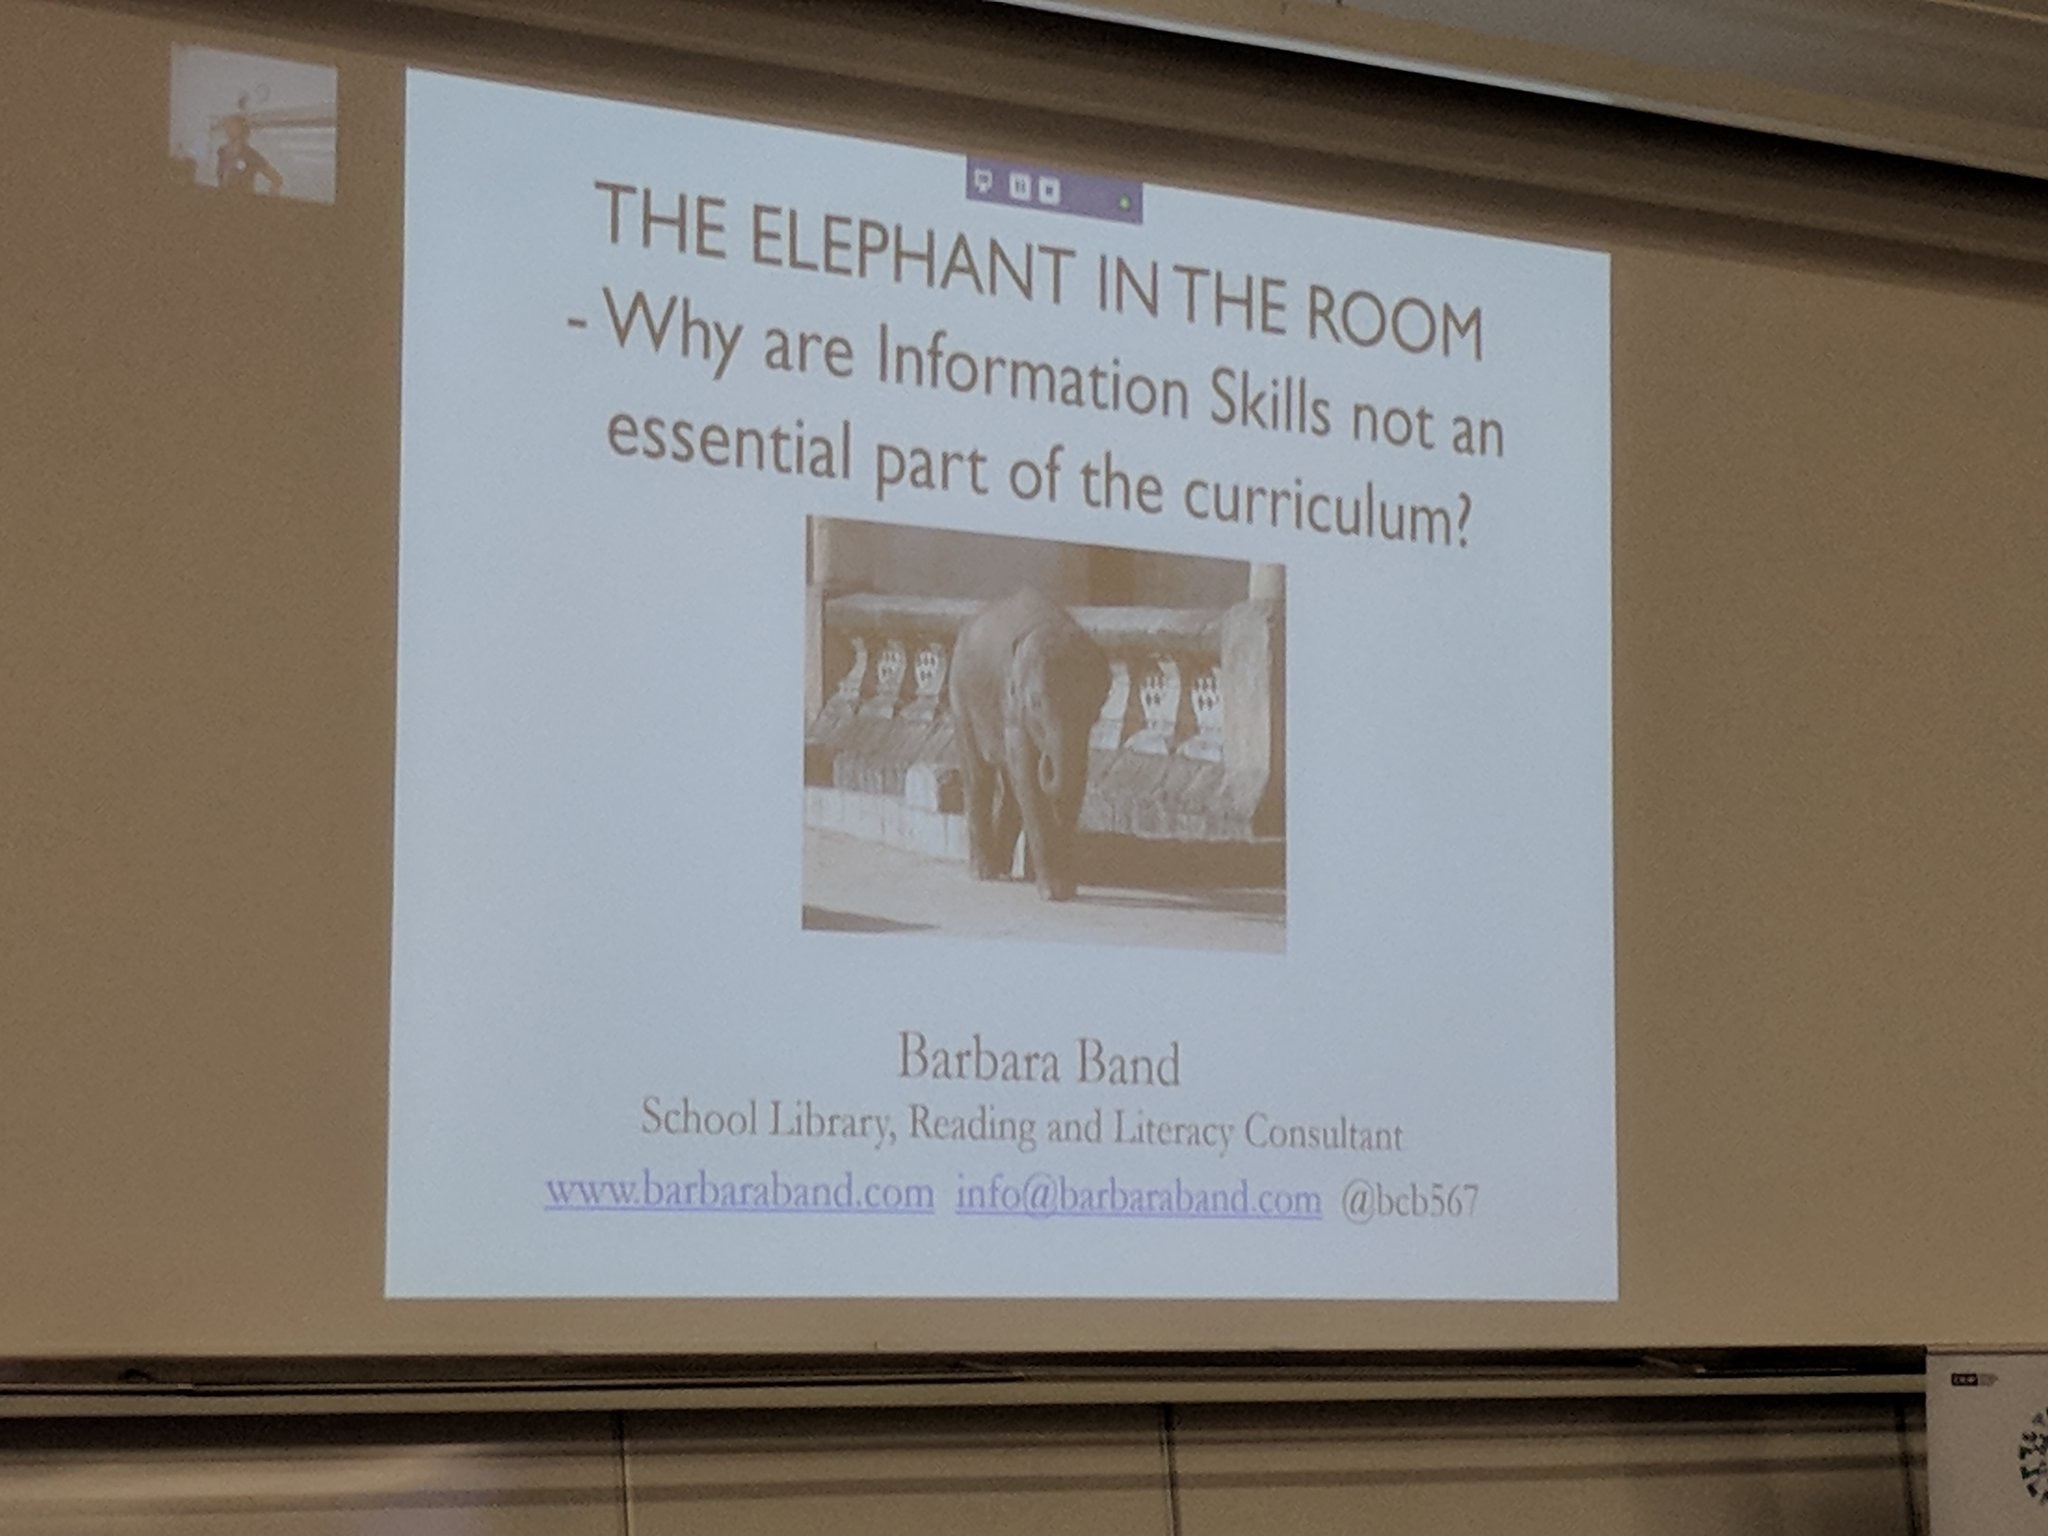 Barbara Band keynote: The elephant in the room